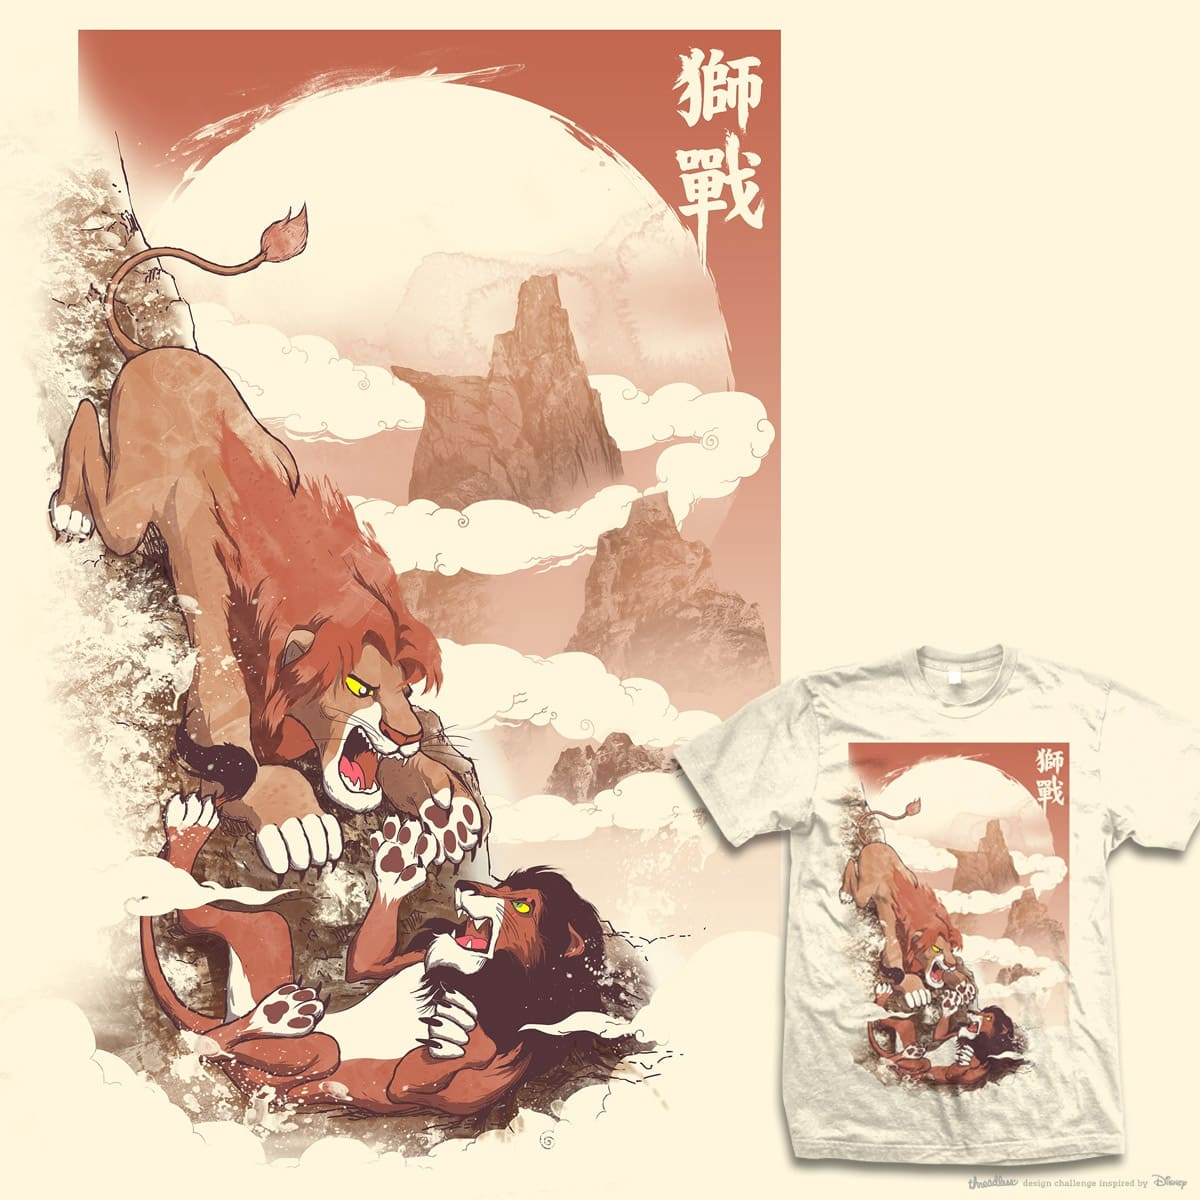 The Fight by thesimplyshit and silentOp on Threadless